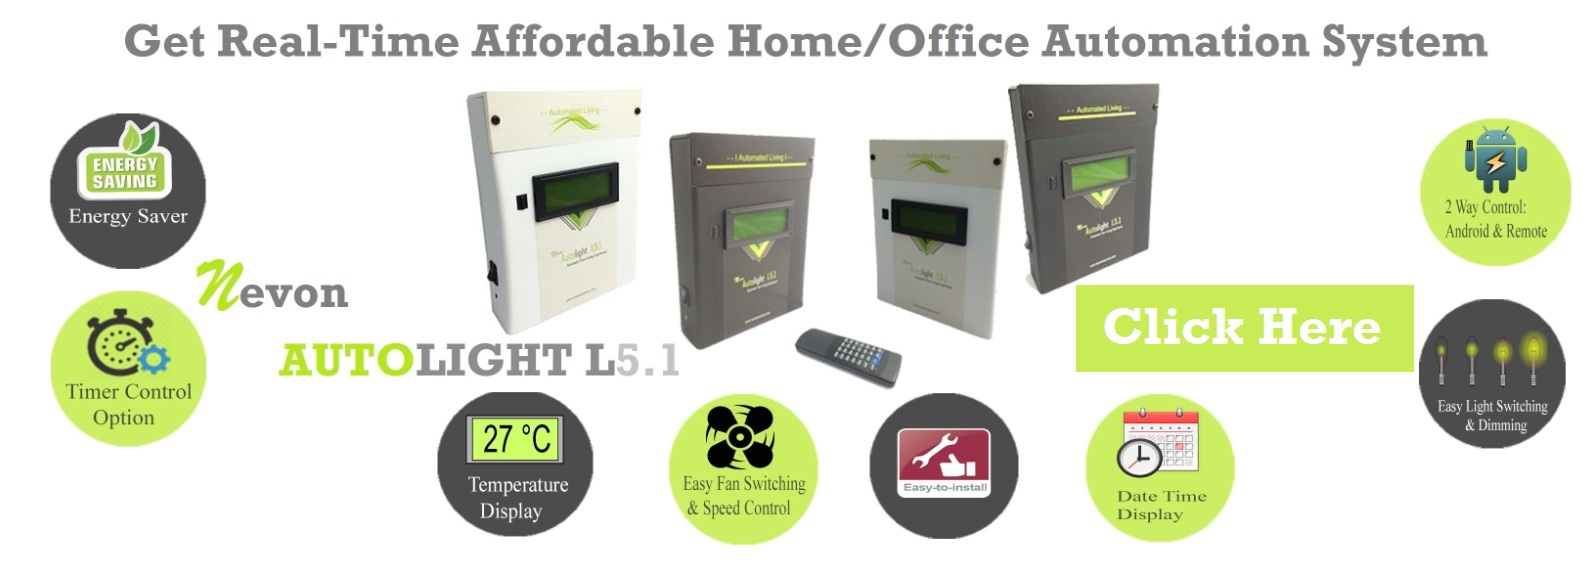 affordable home automation system